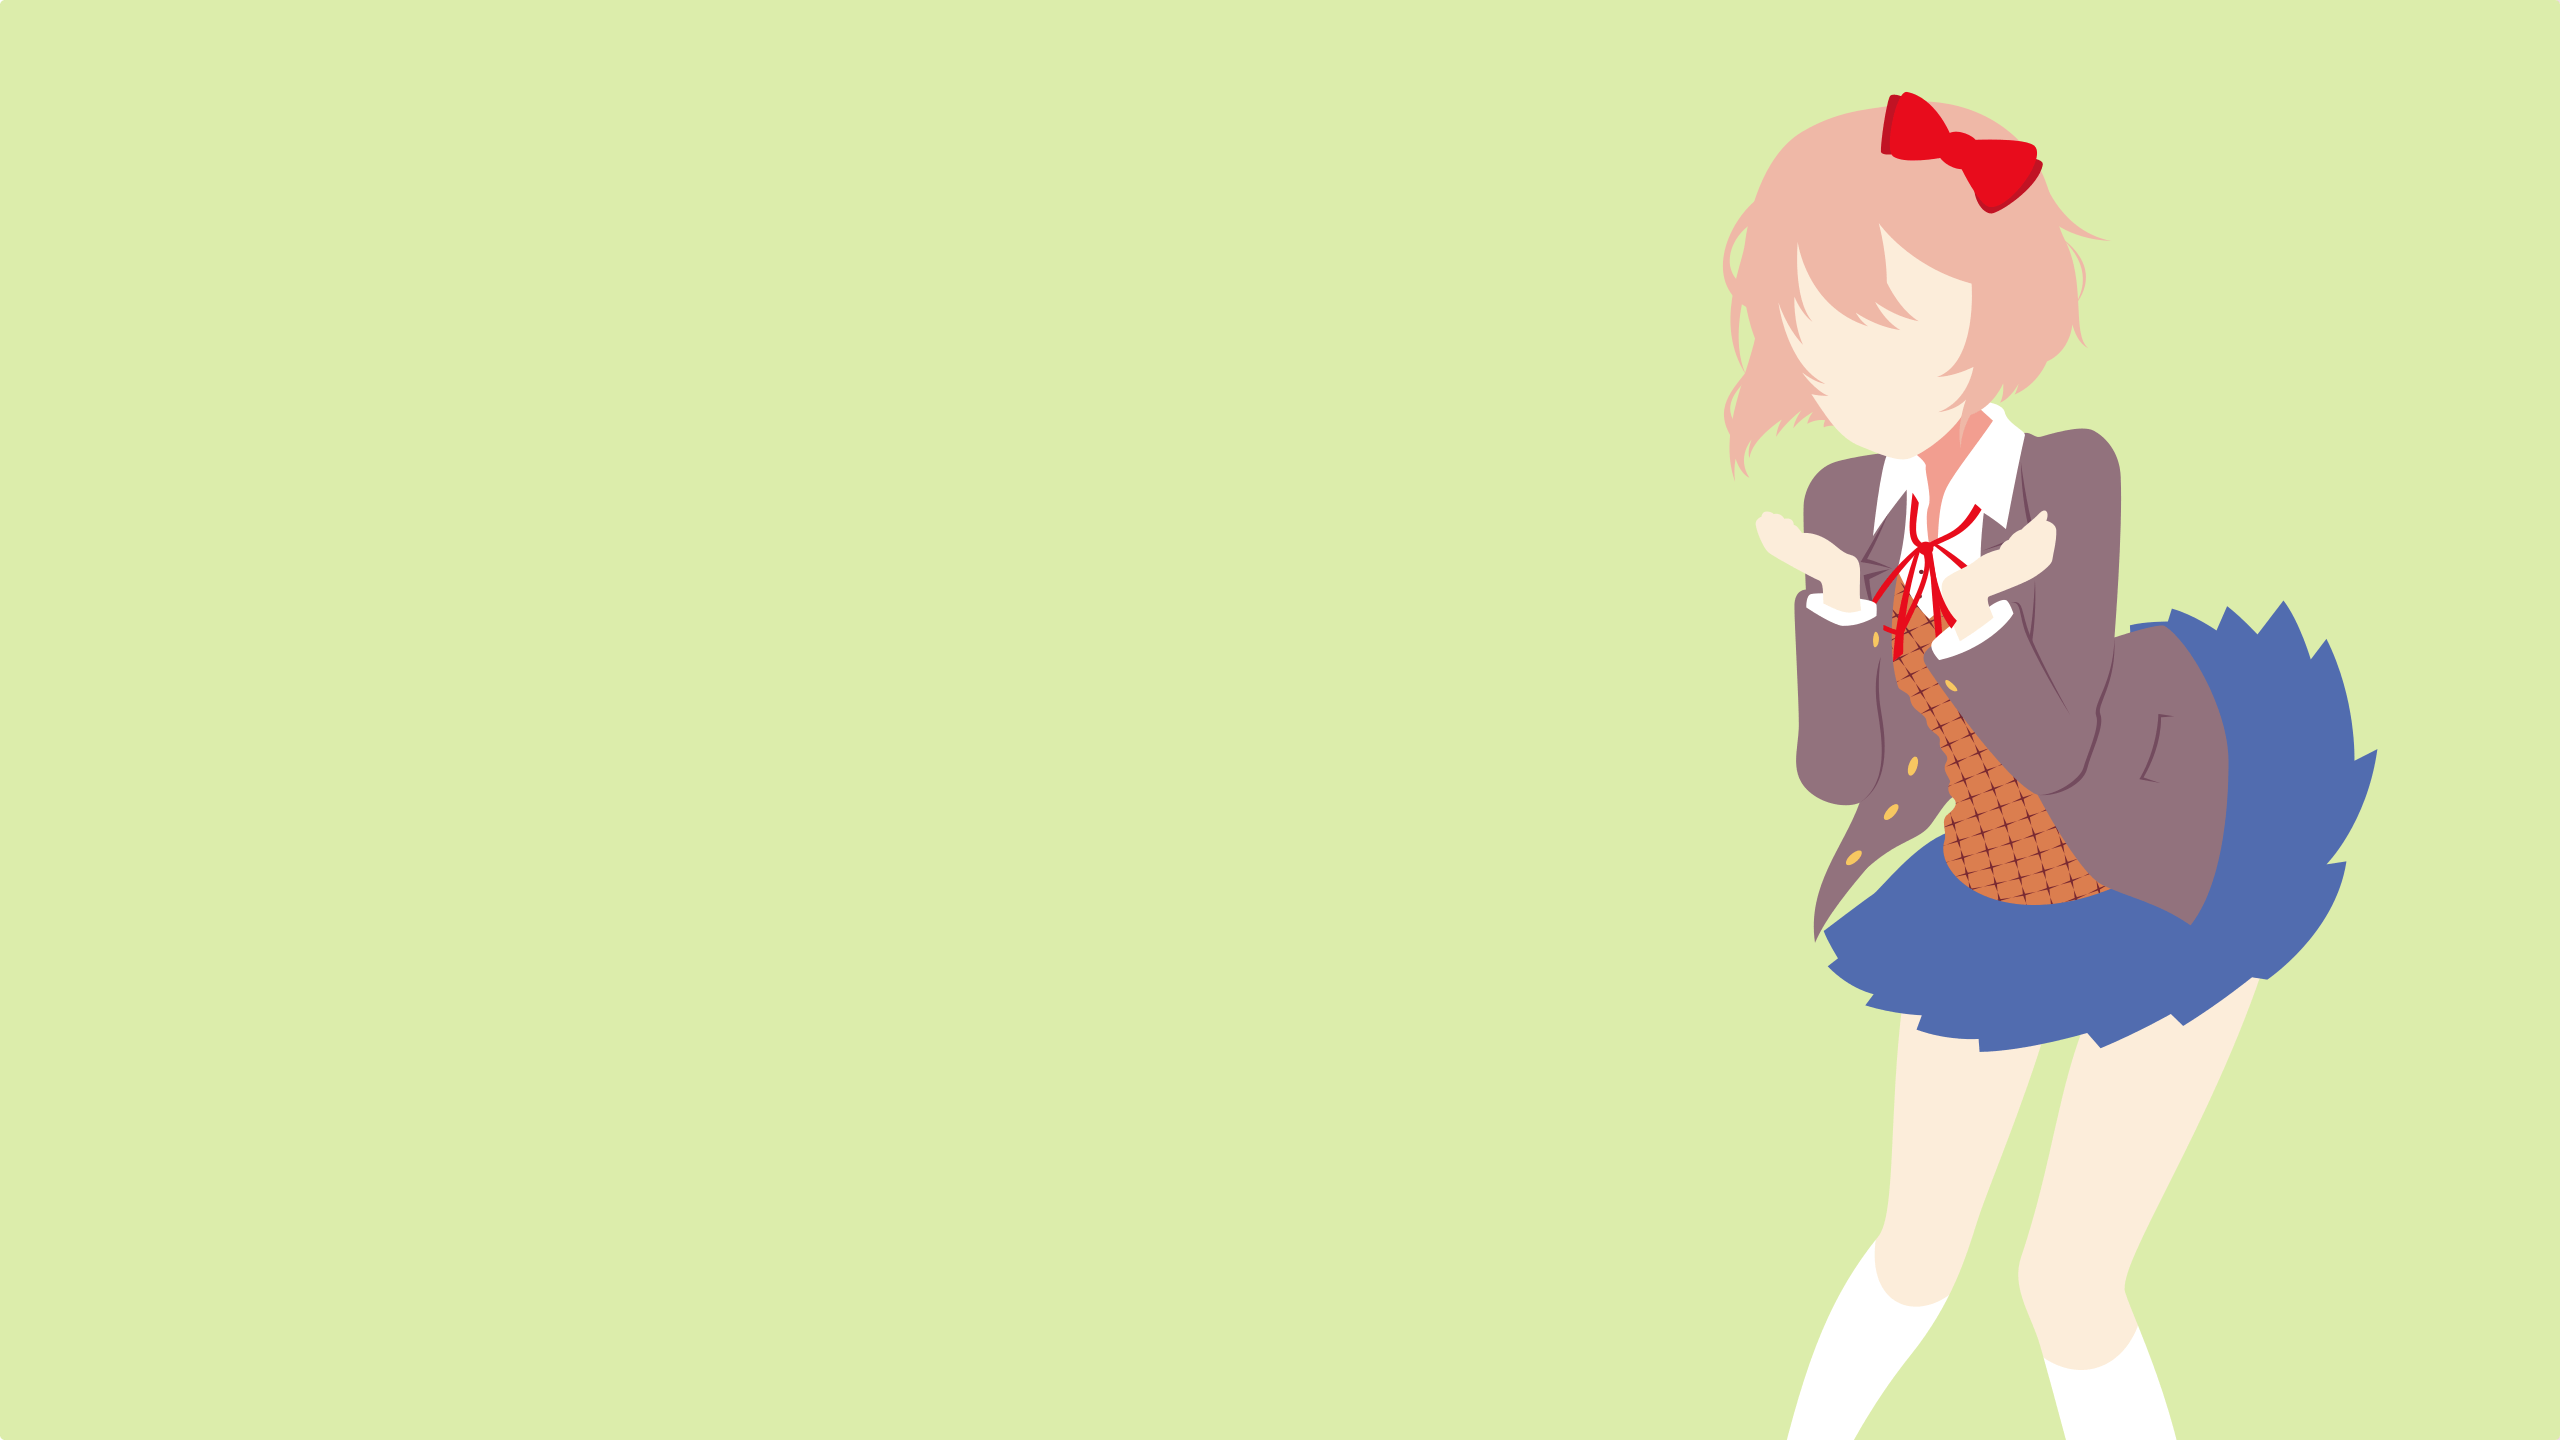 Doki Doki Literature Club Wallpapers Wallpaper Cave